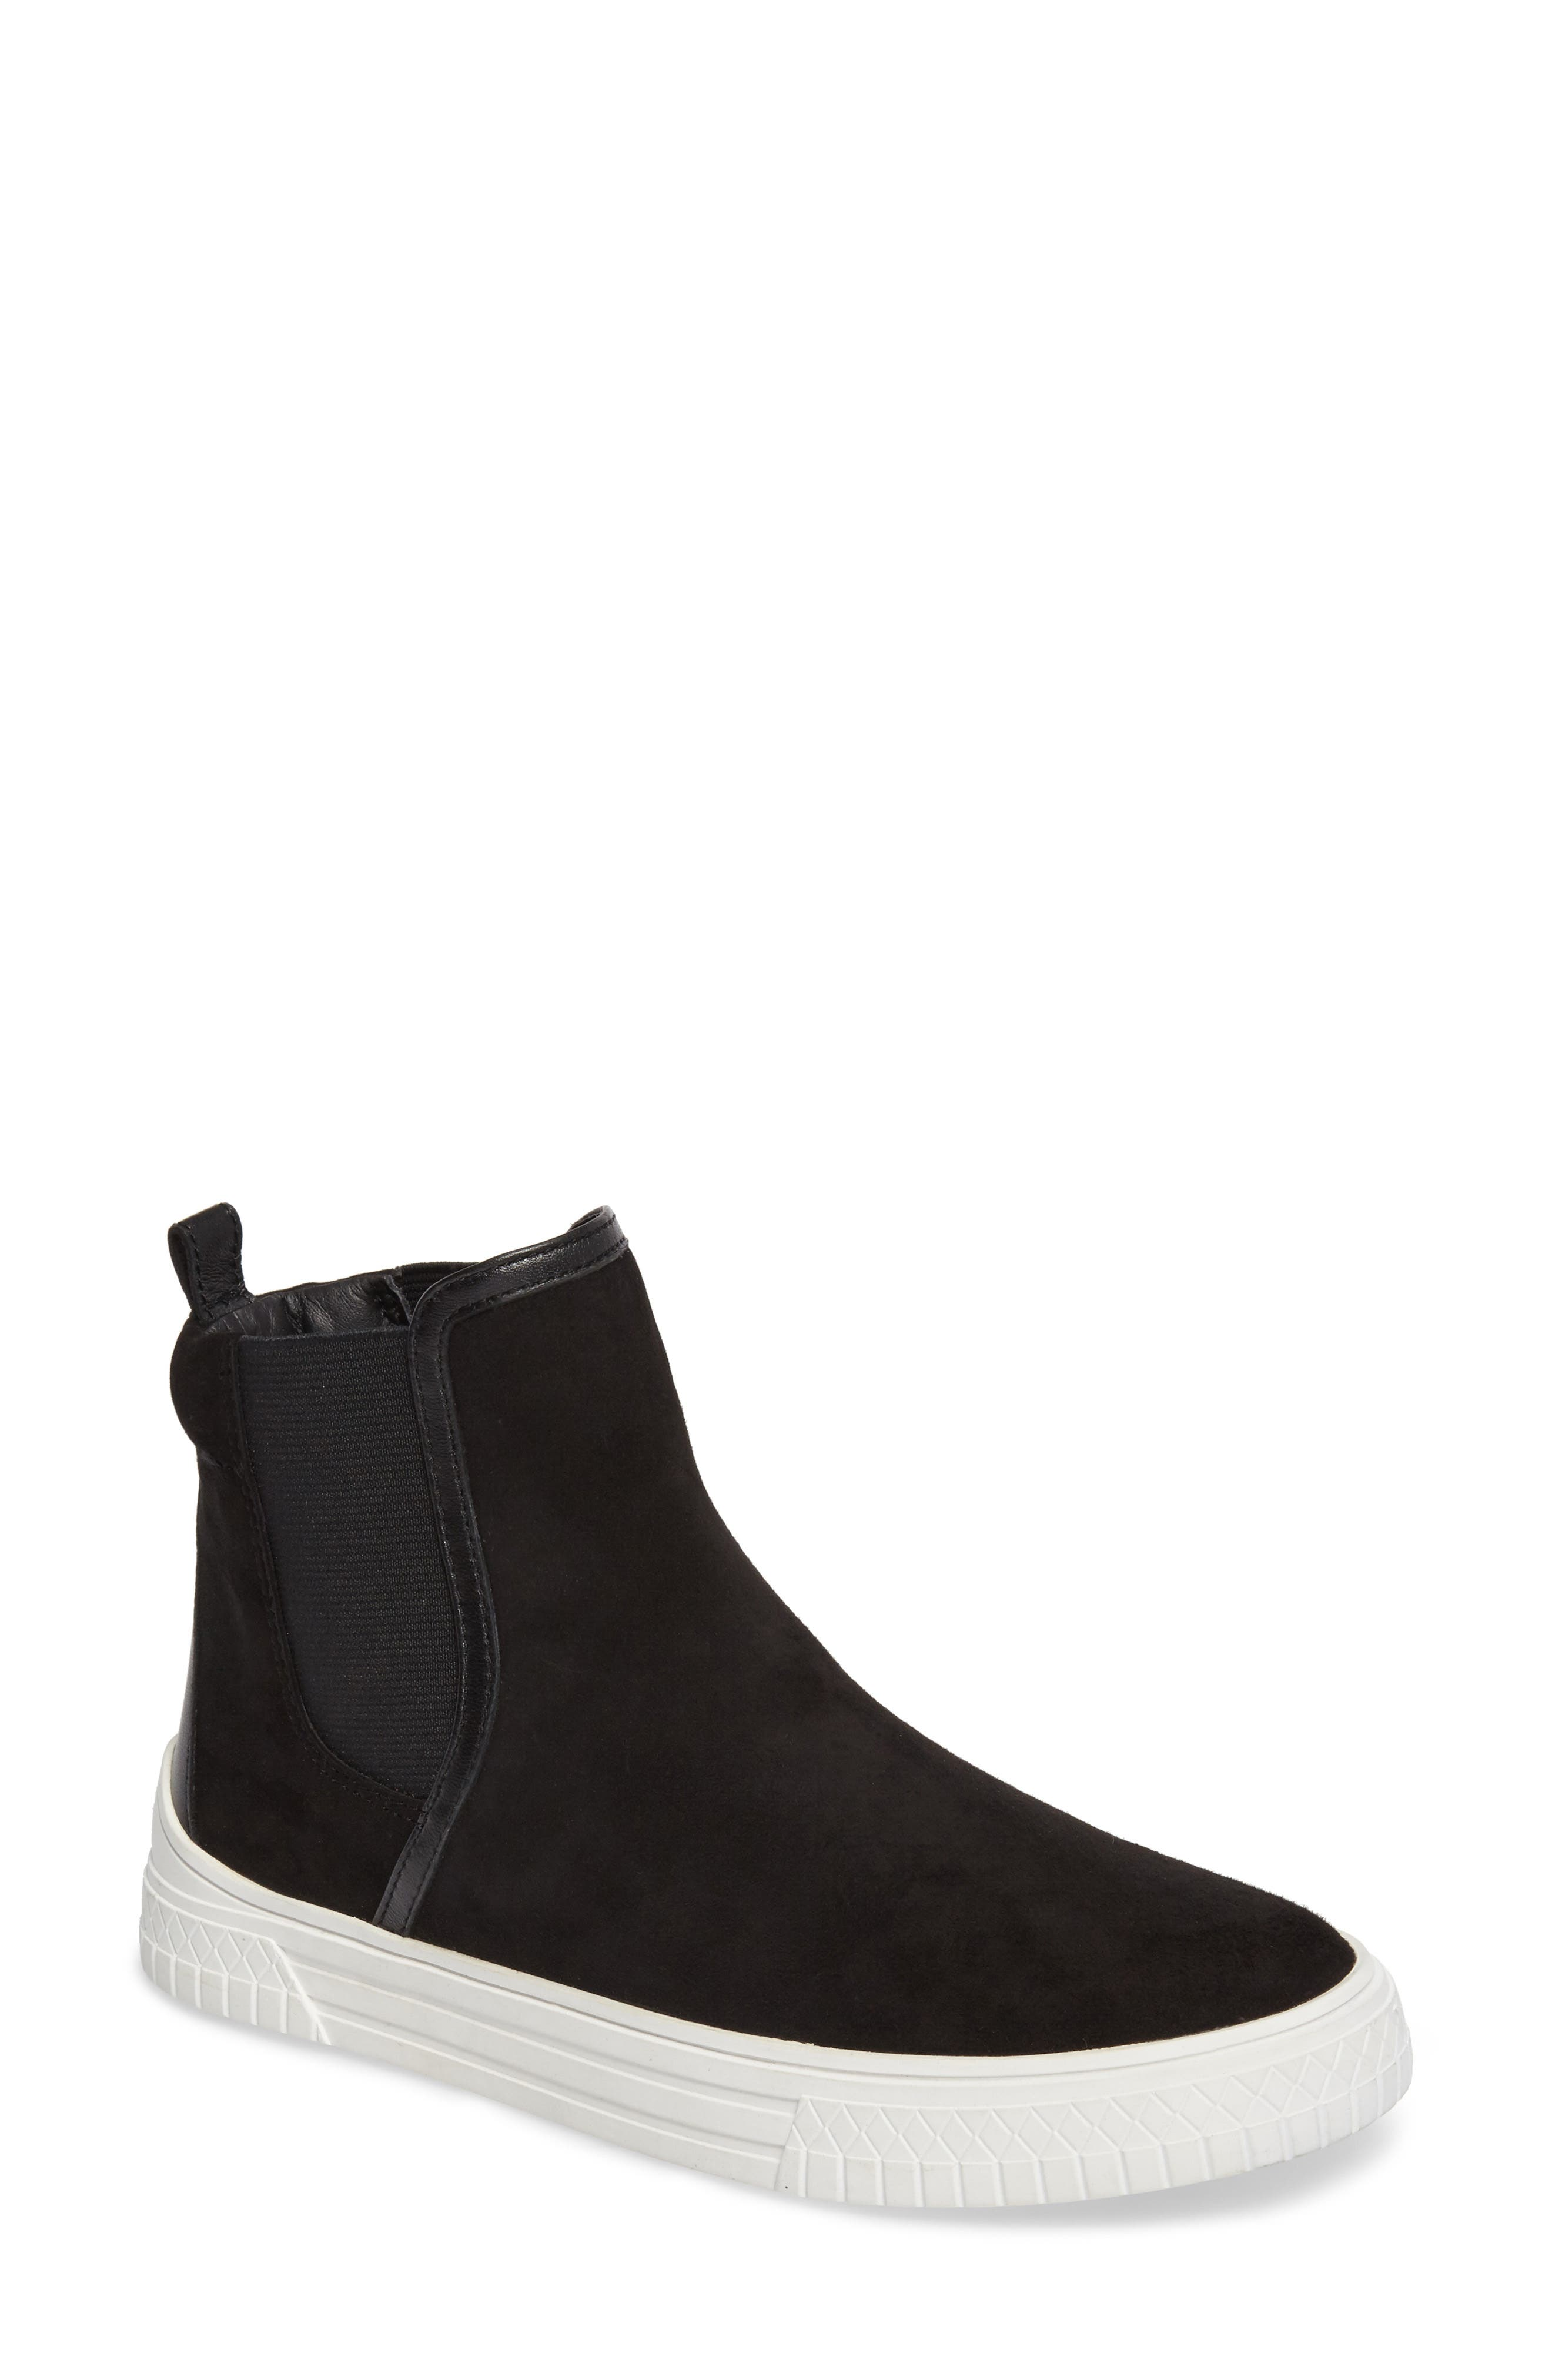 Gage Chelsea Boot,                             Main thumbnail 1, color,                             Black Suede